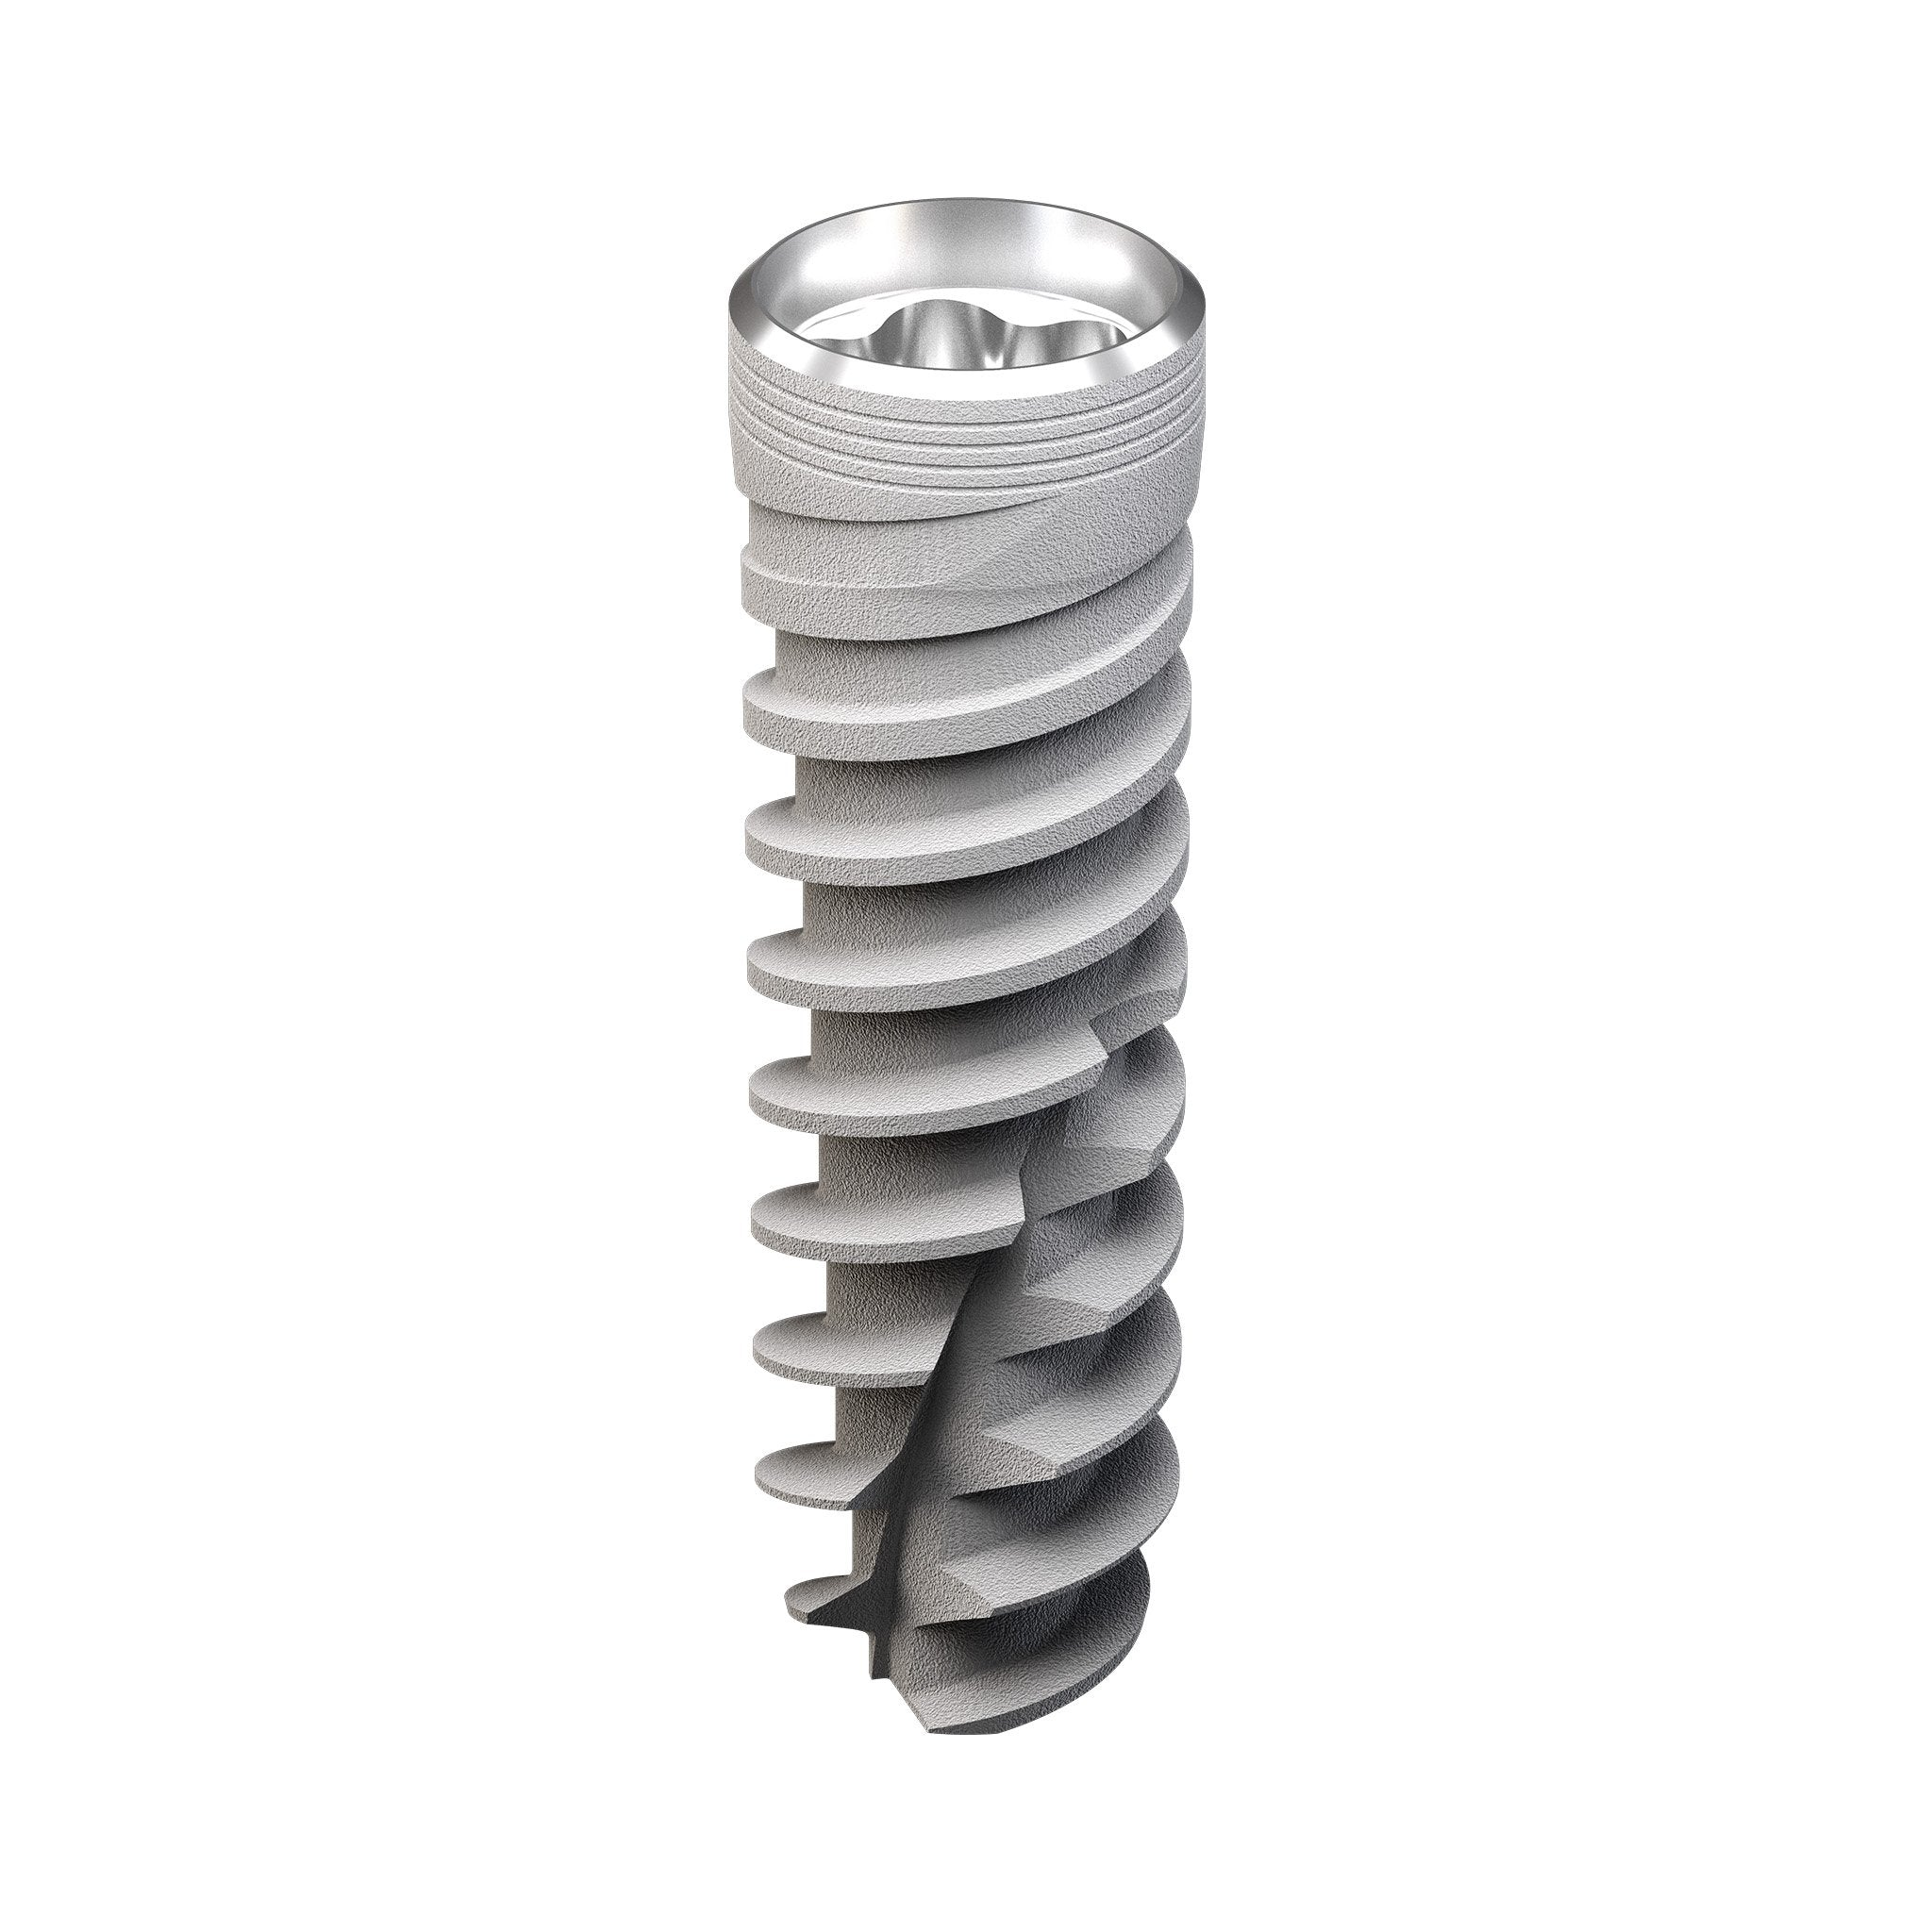 Prima Plus™ Implant WD Ø 5.0 x 10.0mm | K3